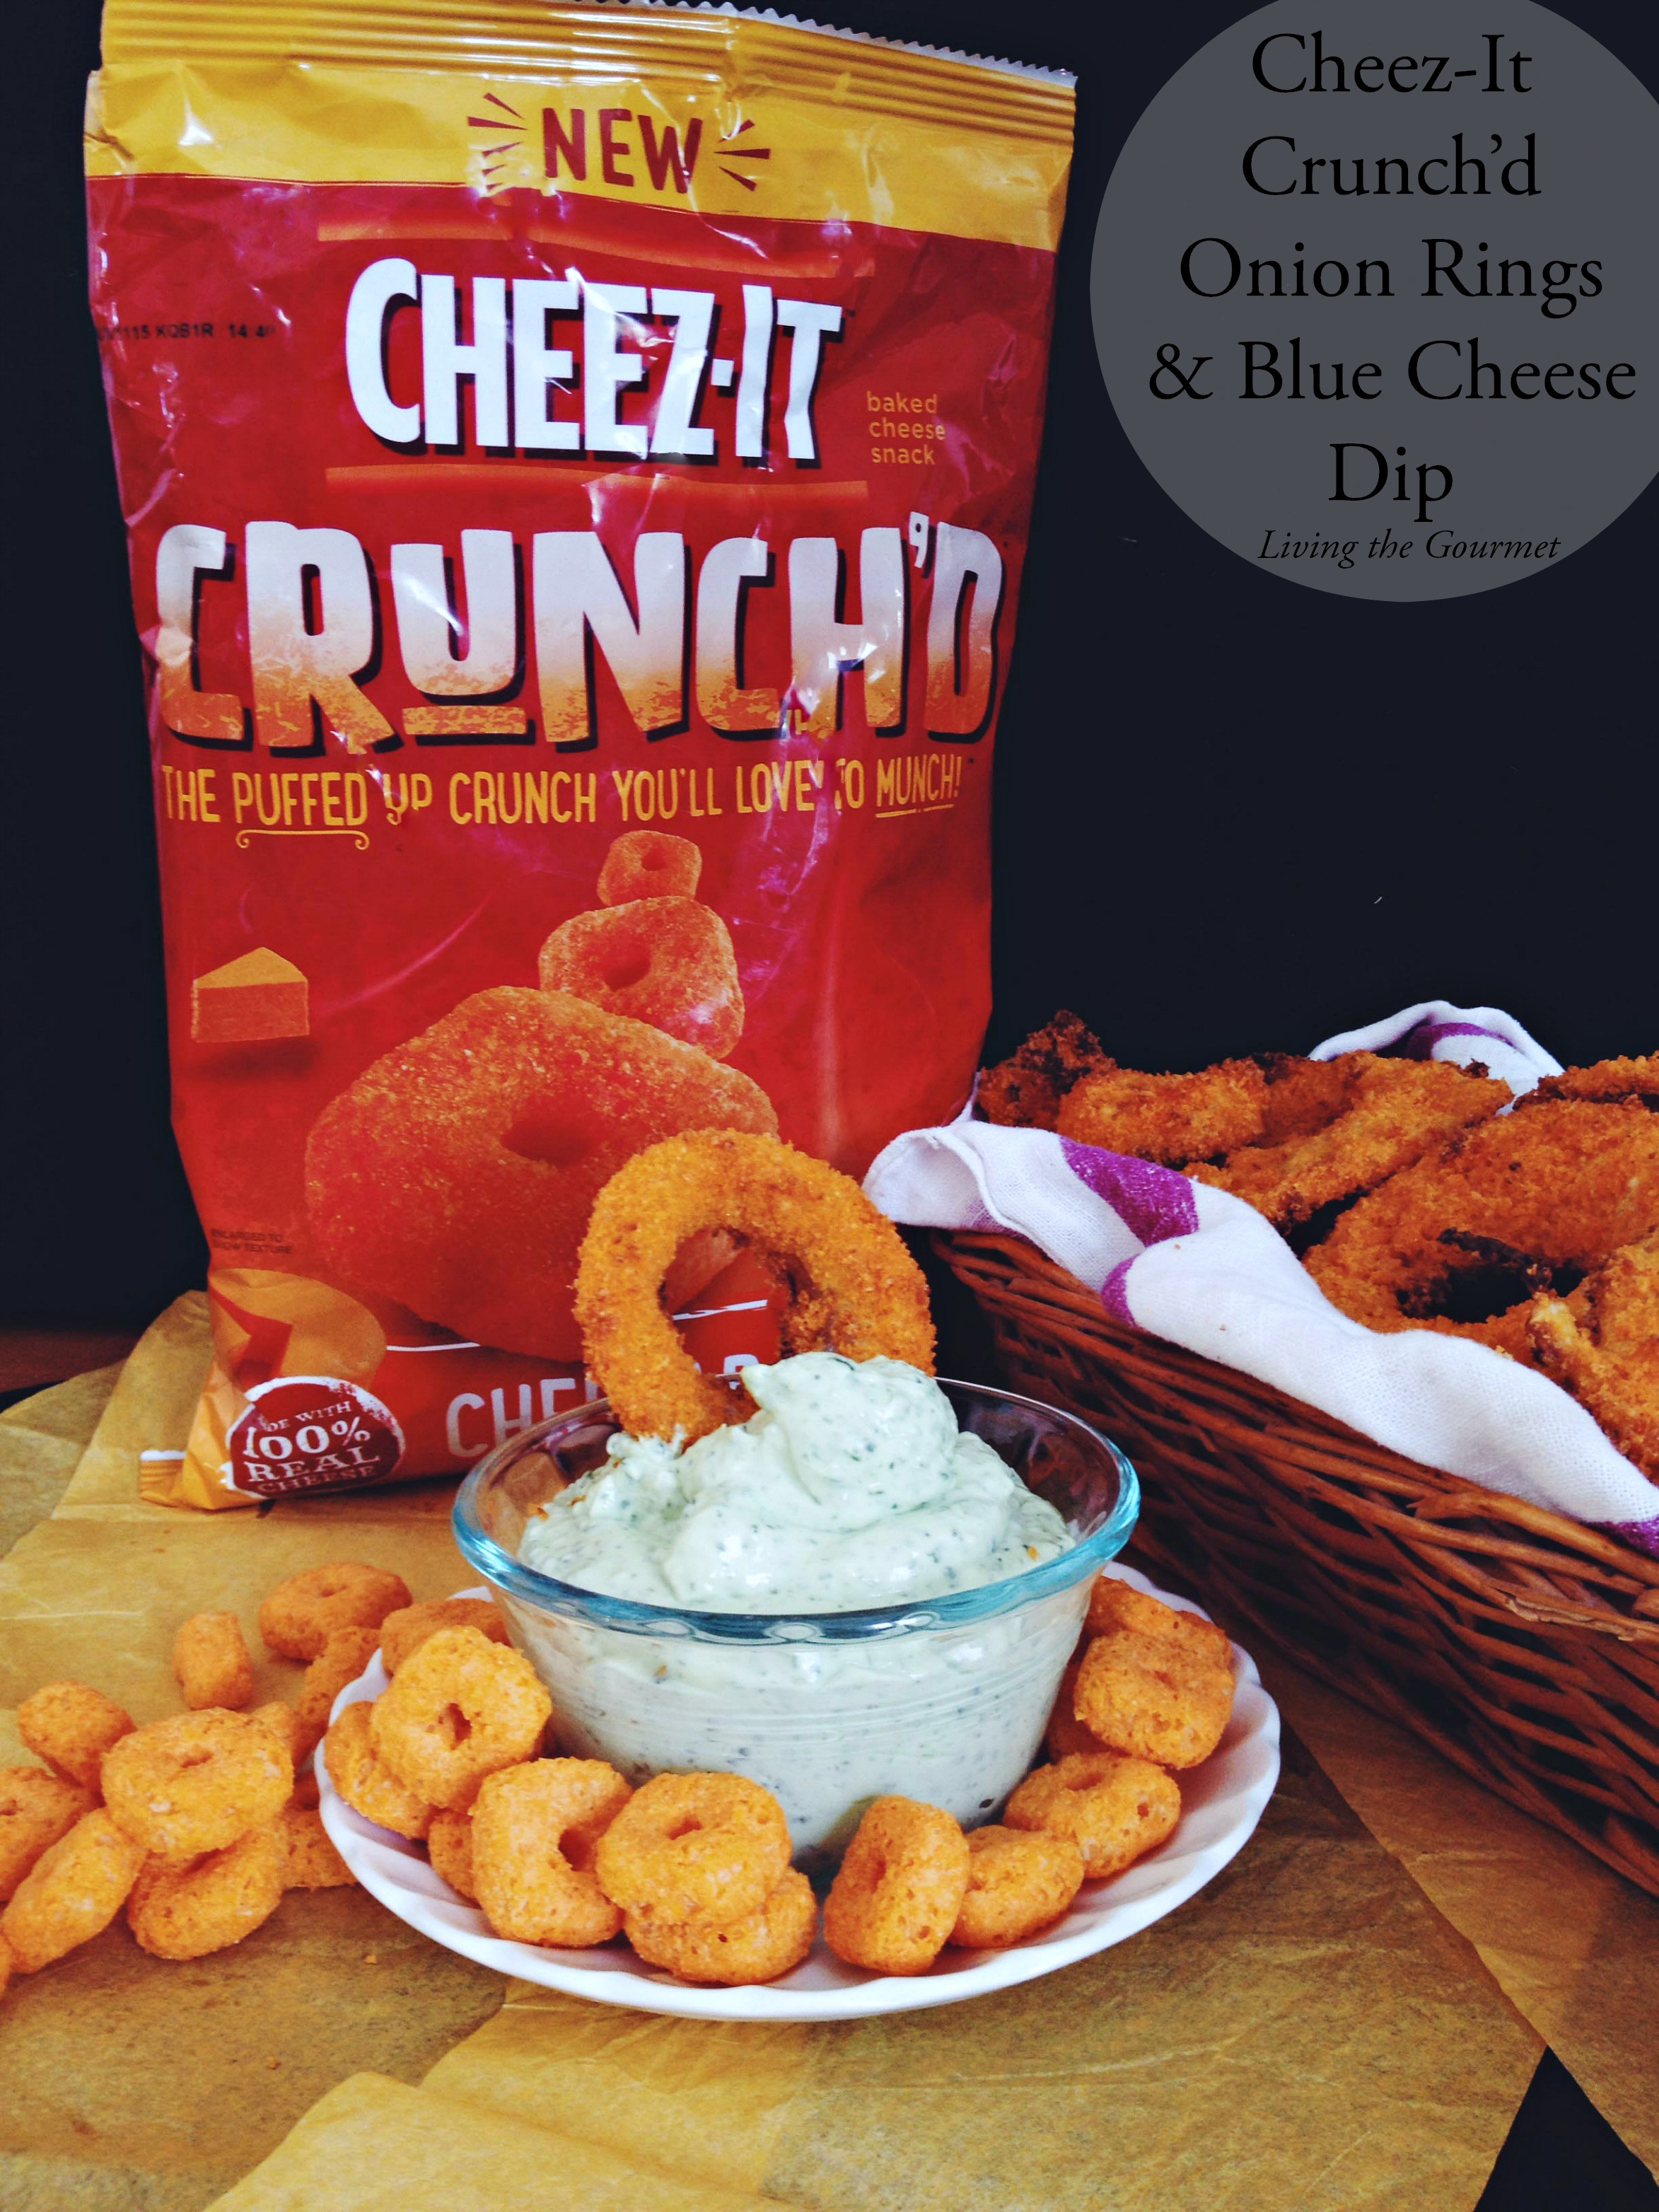 Living the Gourmet: Cheez-It Crusted Jalapeño Poppers & Onion Rings